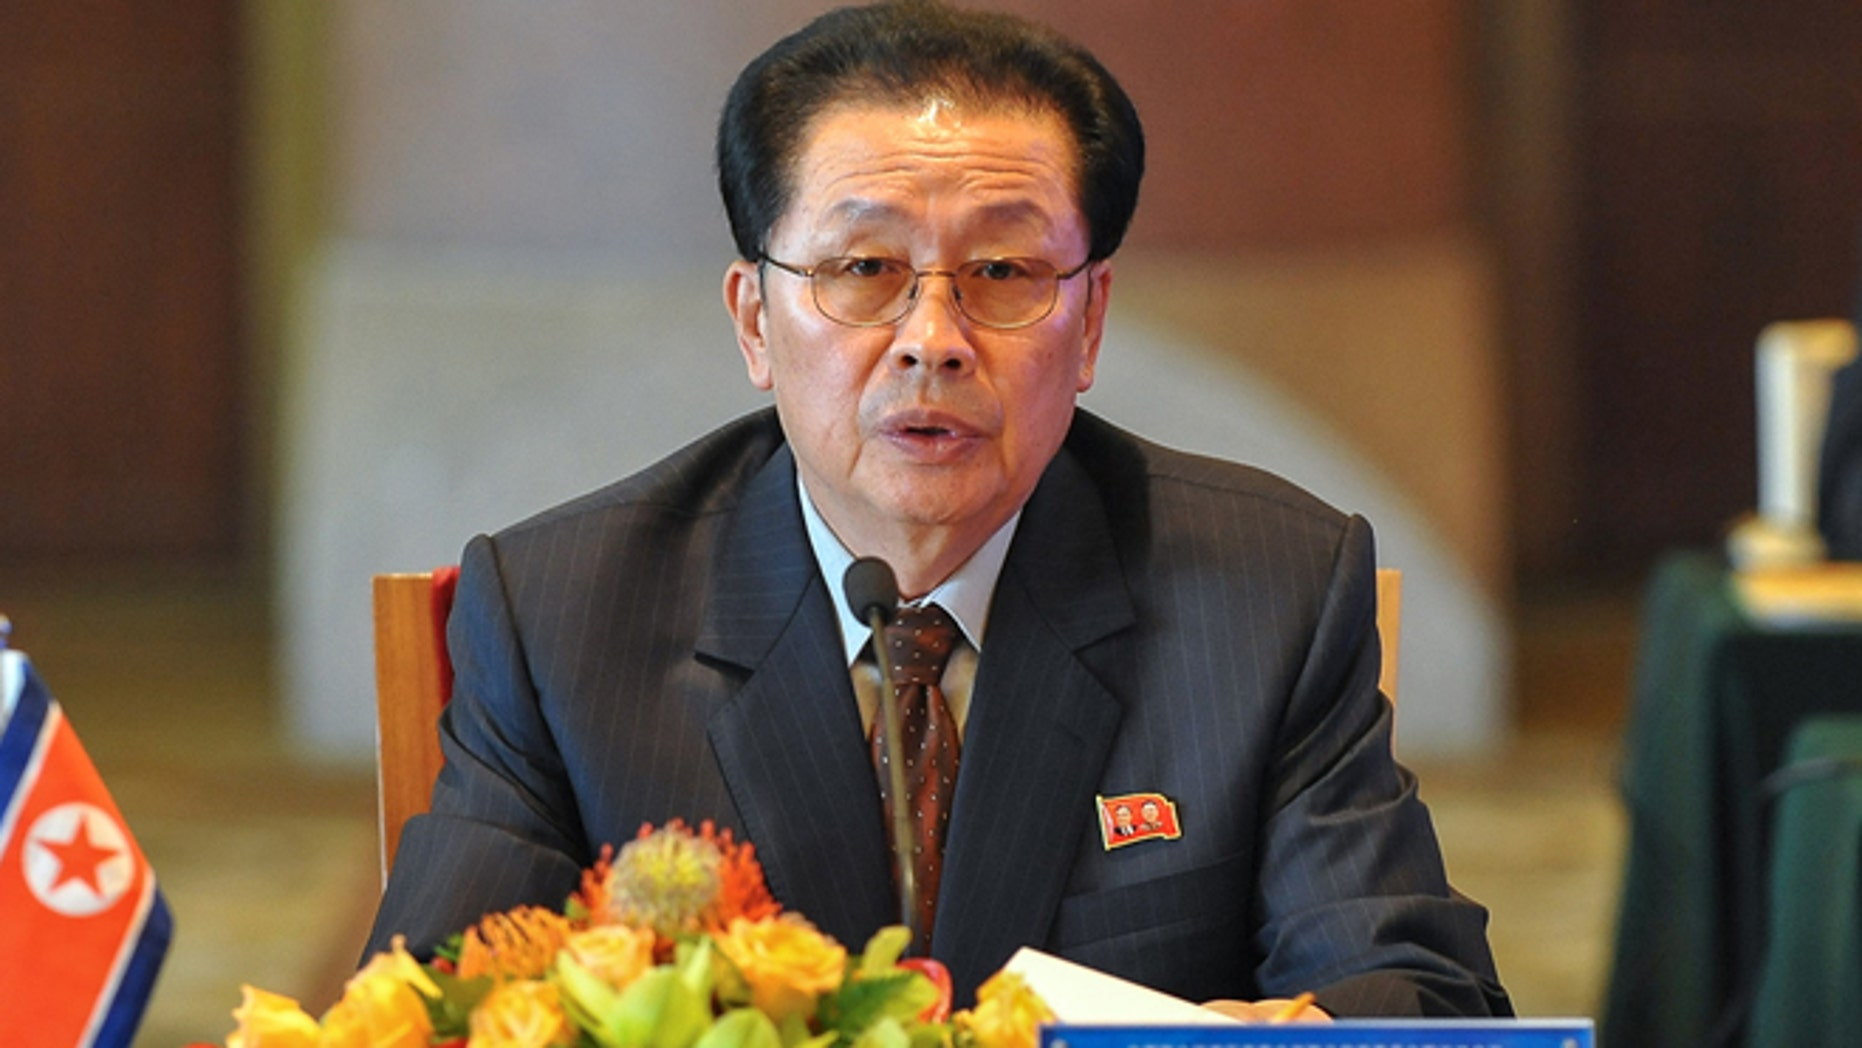 Aug. 14, 2012: In this file photo provided by China's Xinhua News Agency, Jang Song Thaek, North Korea's vice chairman of the powerful National Defense Commission, attends the third meeting on developing the economic zones in North Korea, in Beijing.